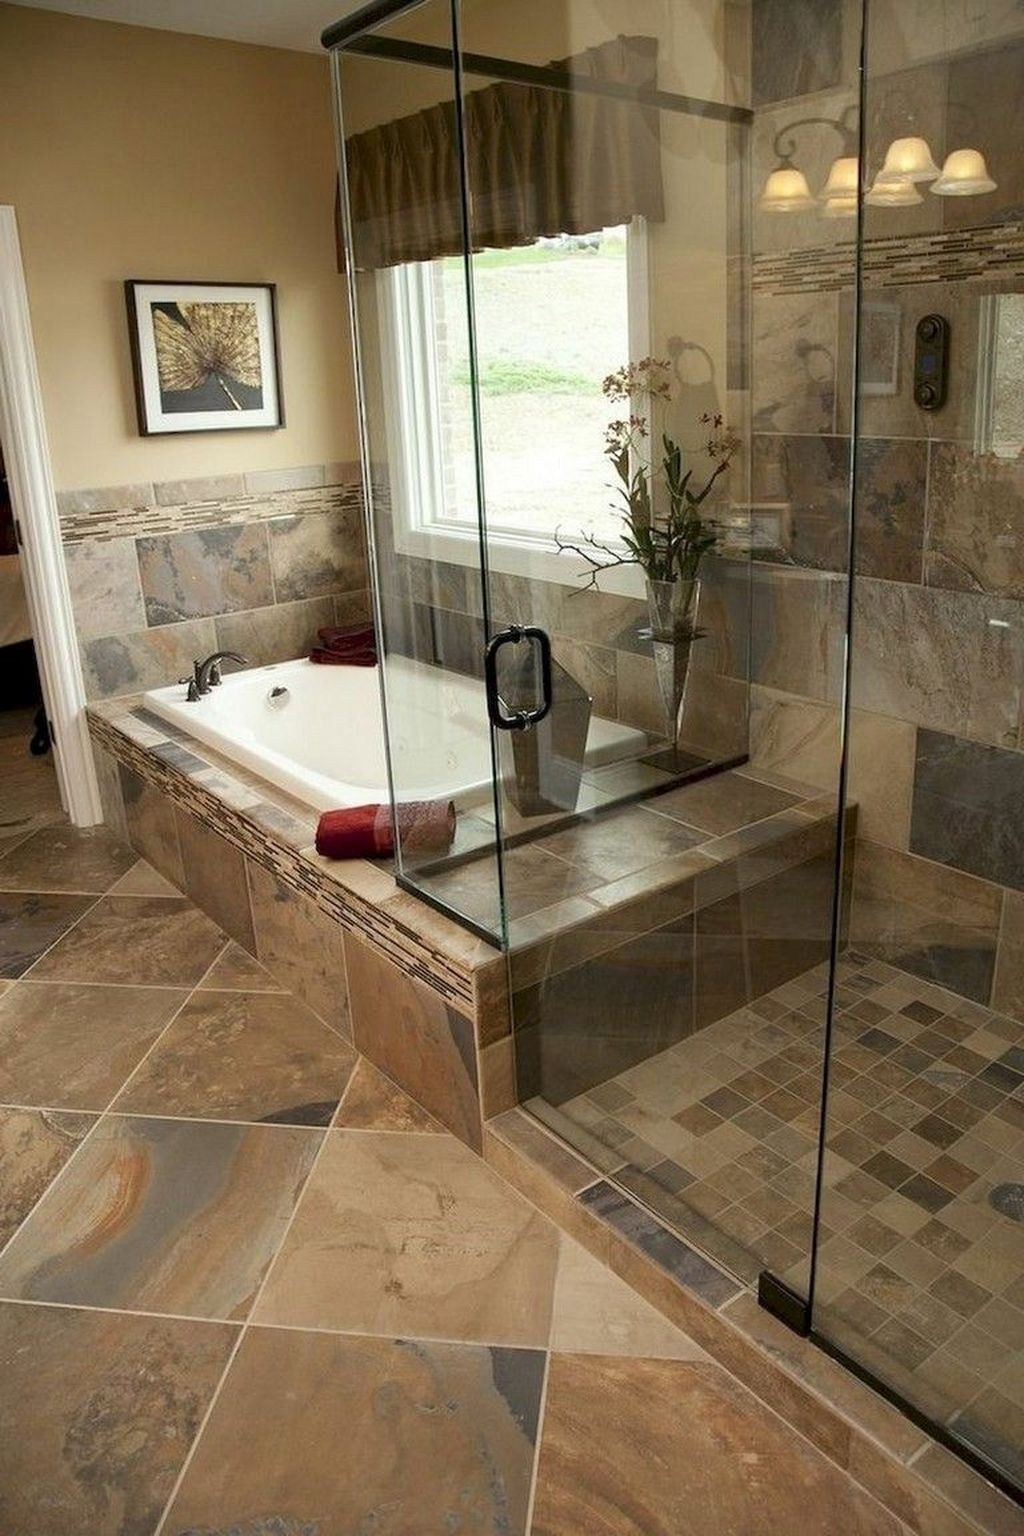 Simple Master Bathroom Renovation Ideas19 Master Bathroom Renovation Small Bathroom Bathrooms Remodel